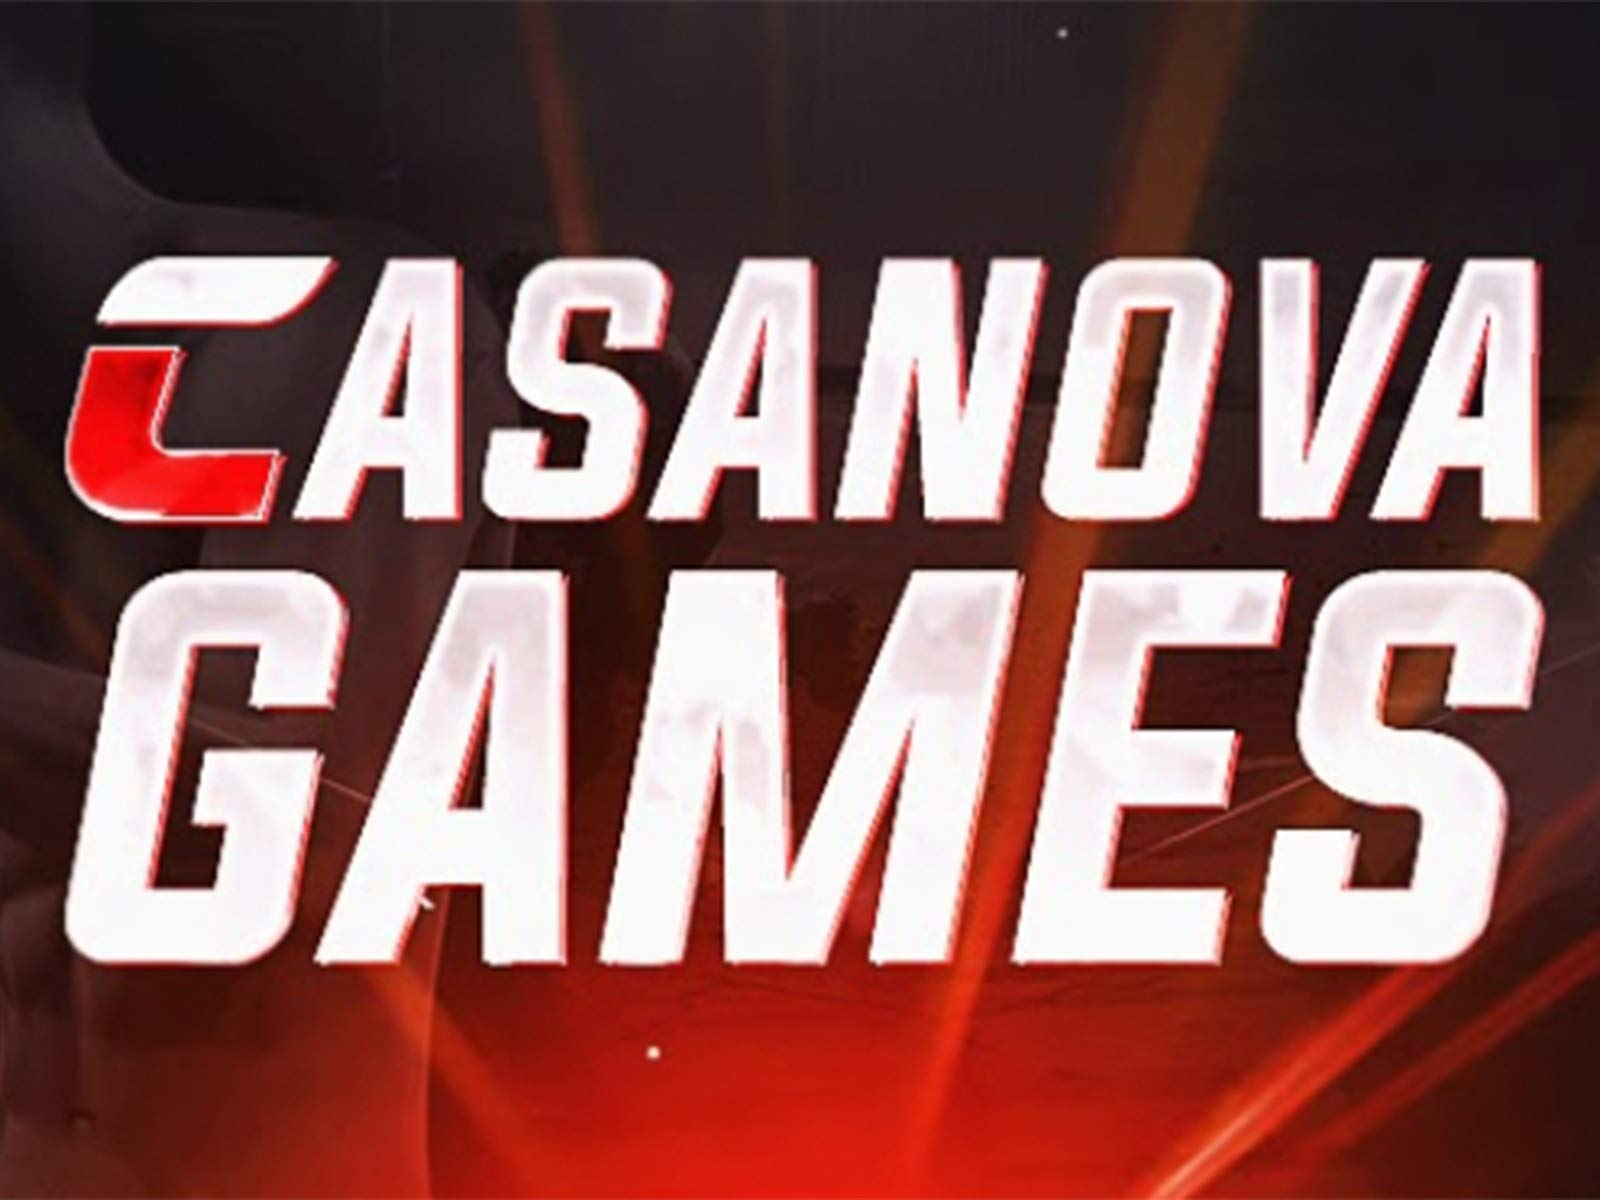 Clip: CasanovaGames on Amazon Prime Video UK